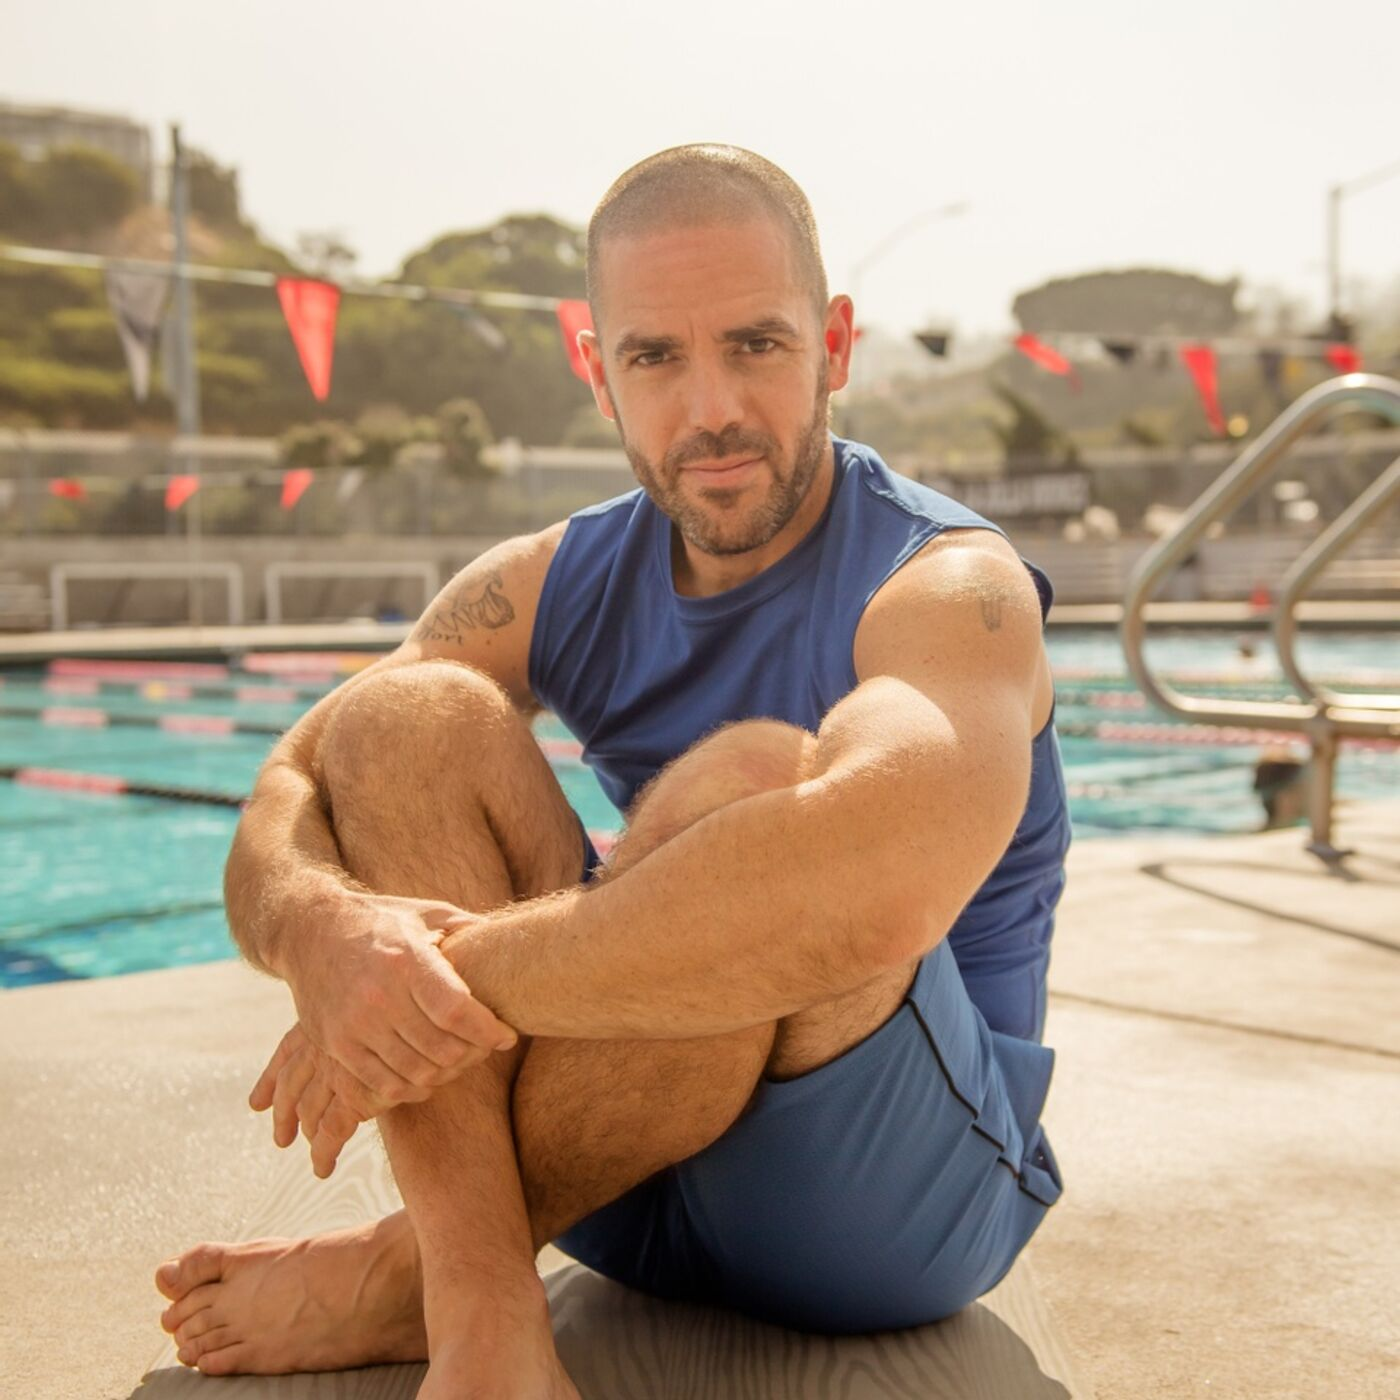 Episode 69 with Jeff Grace Part 2 - Swimming-Specific Yoga Teacher, Mental Health Advocate